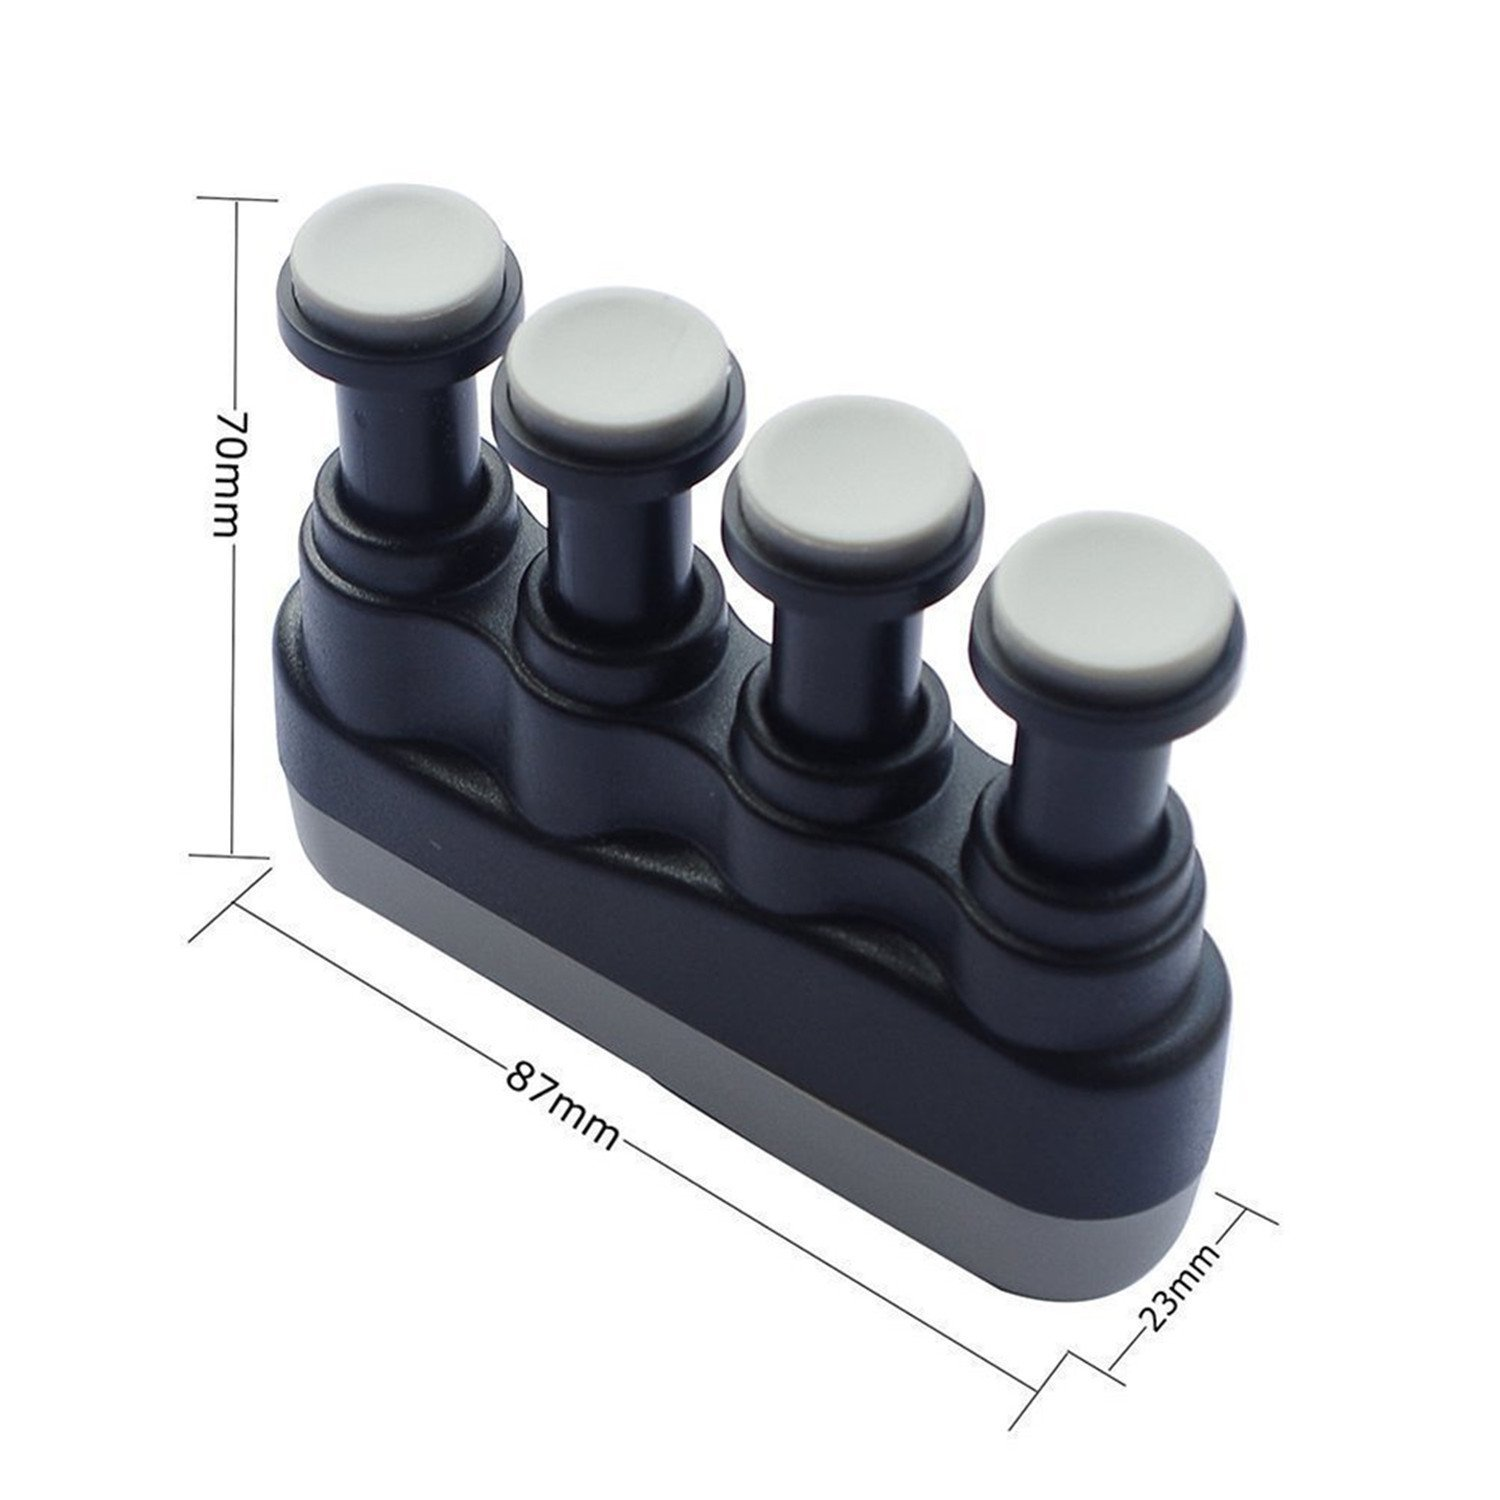 IVYRISE Finger Training Exercise Hand Wrist Strengthener Finger Grip Tension Adjustment Strength Training Equipment for Guitar, Piano, Golf, Tennis & Physical Therapy, Black by IVYRISE (Image #3)